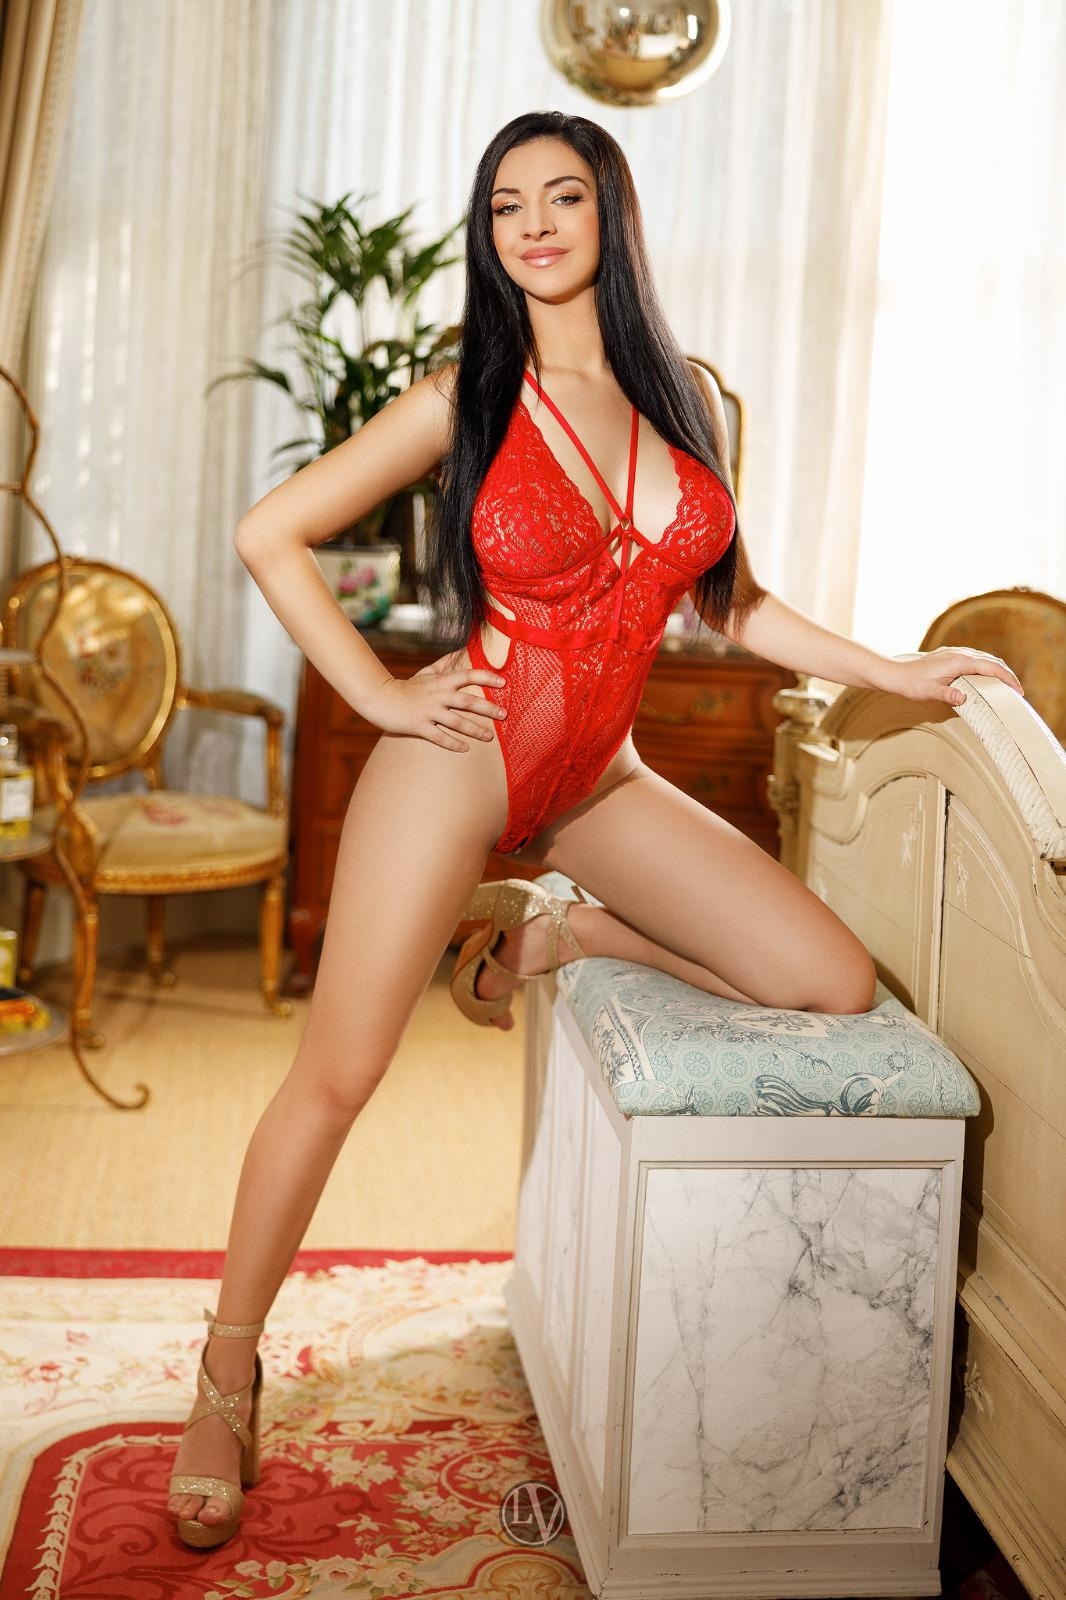 Sweet London escort Shelby showing off her gorgeous toned figure